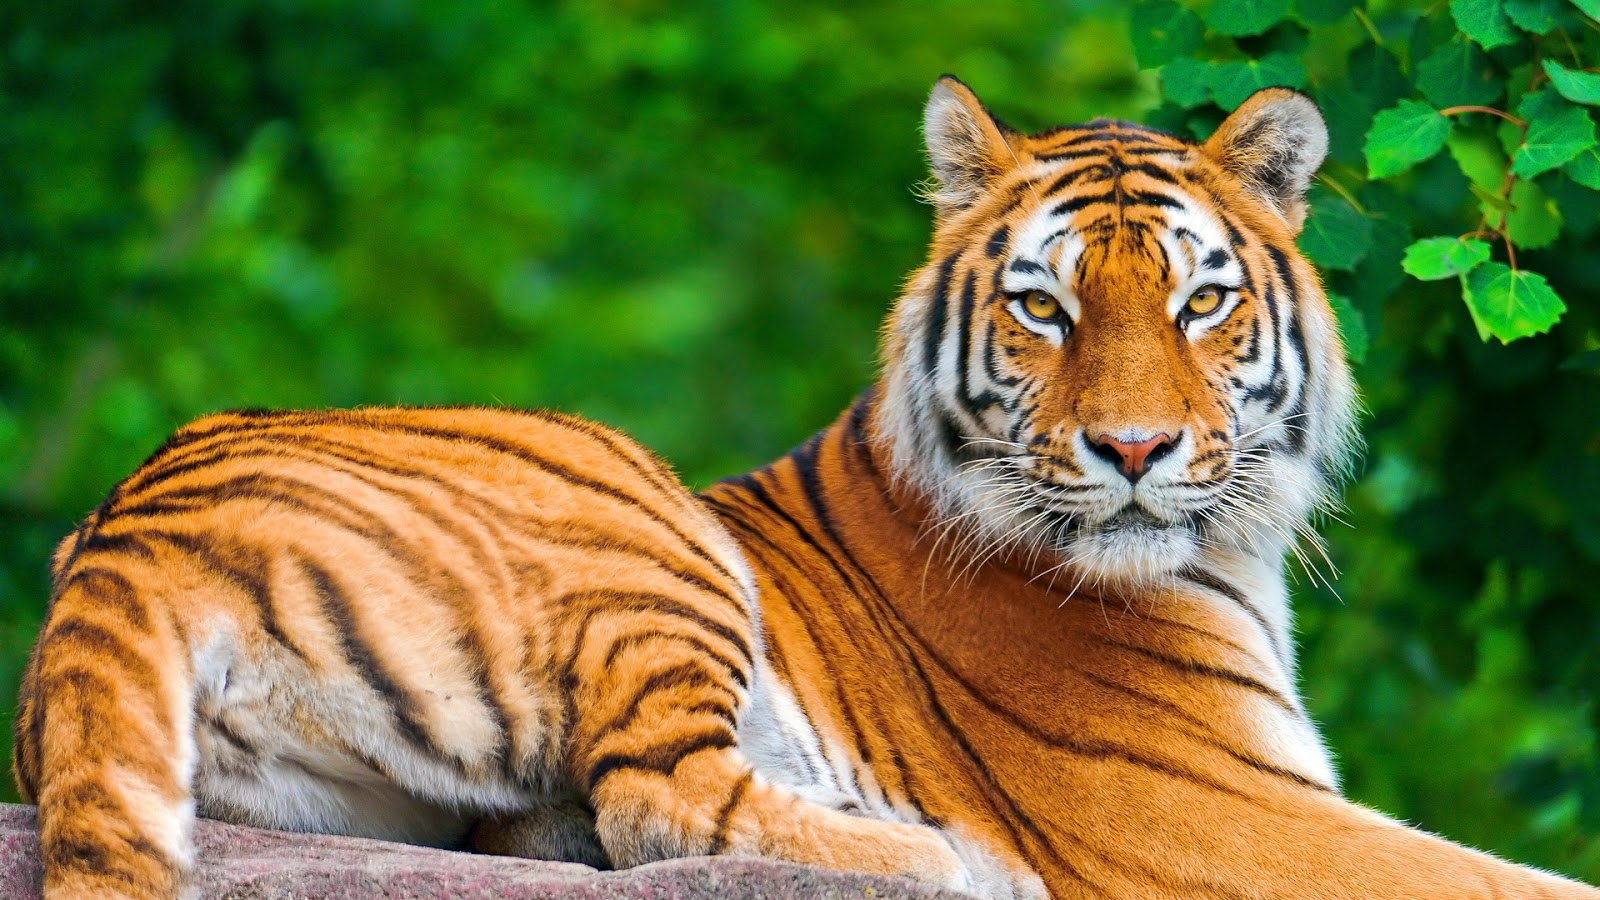 10 amazing animals tiger hd wallpapers | explore wallpaper